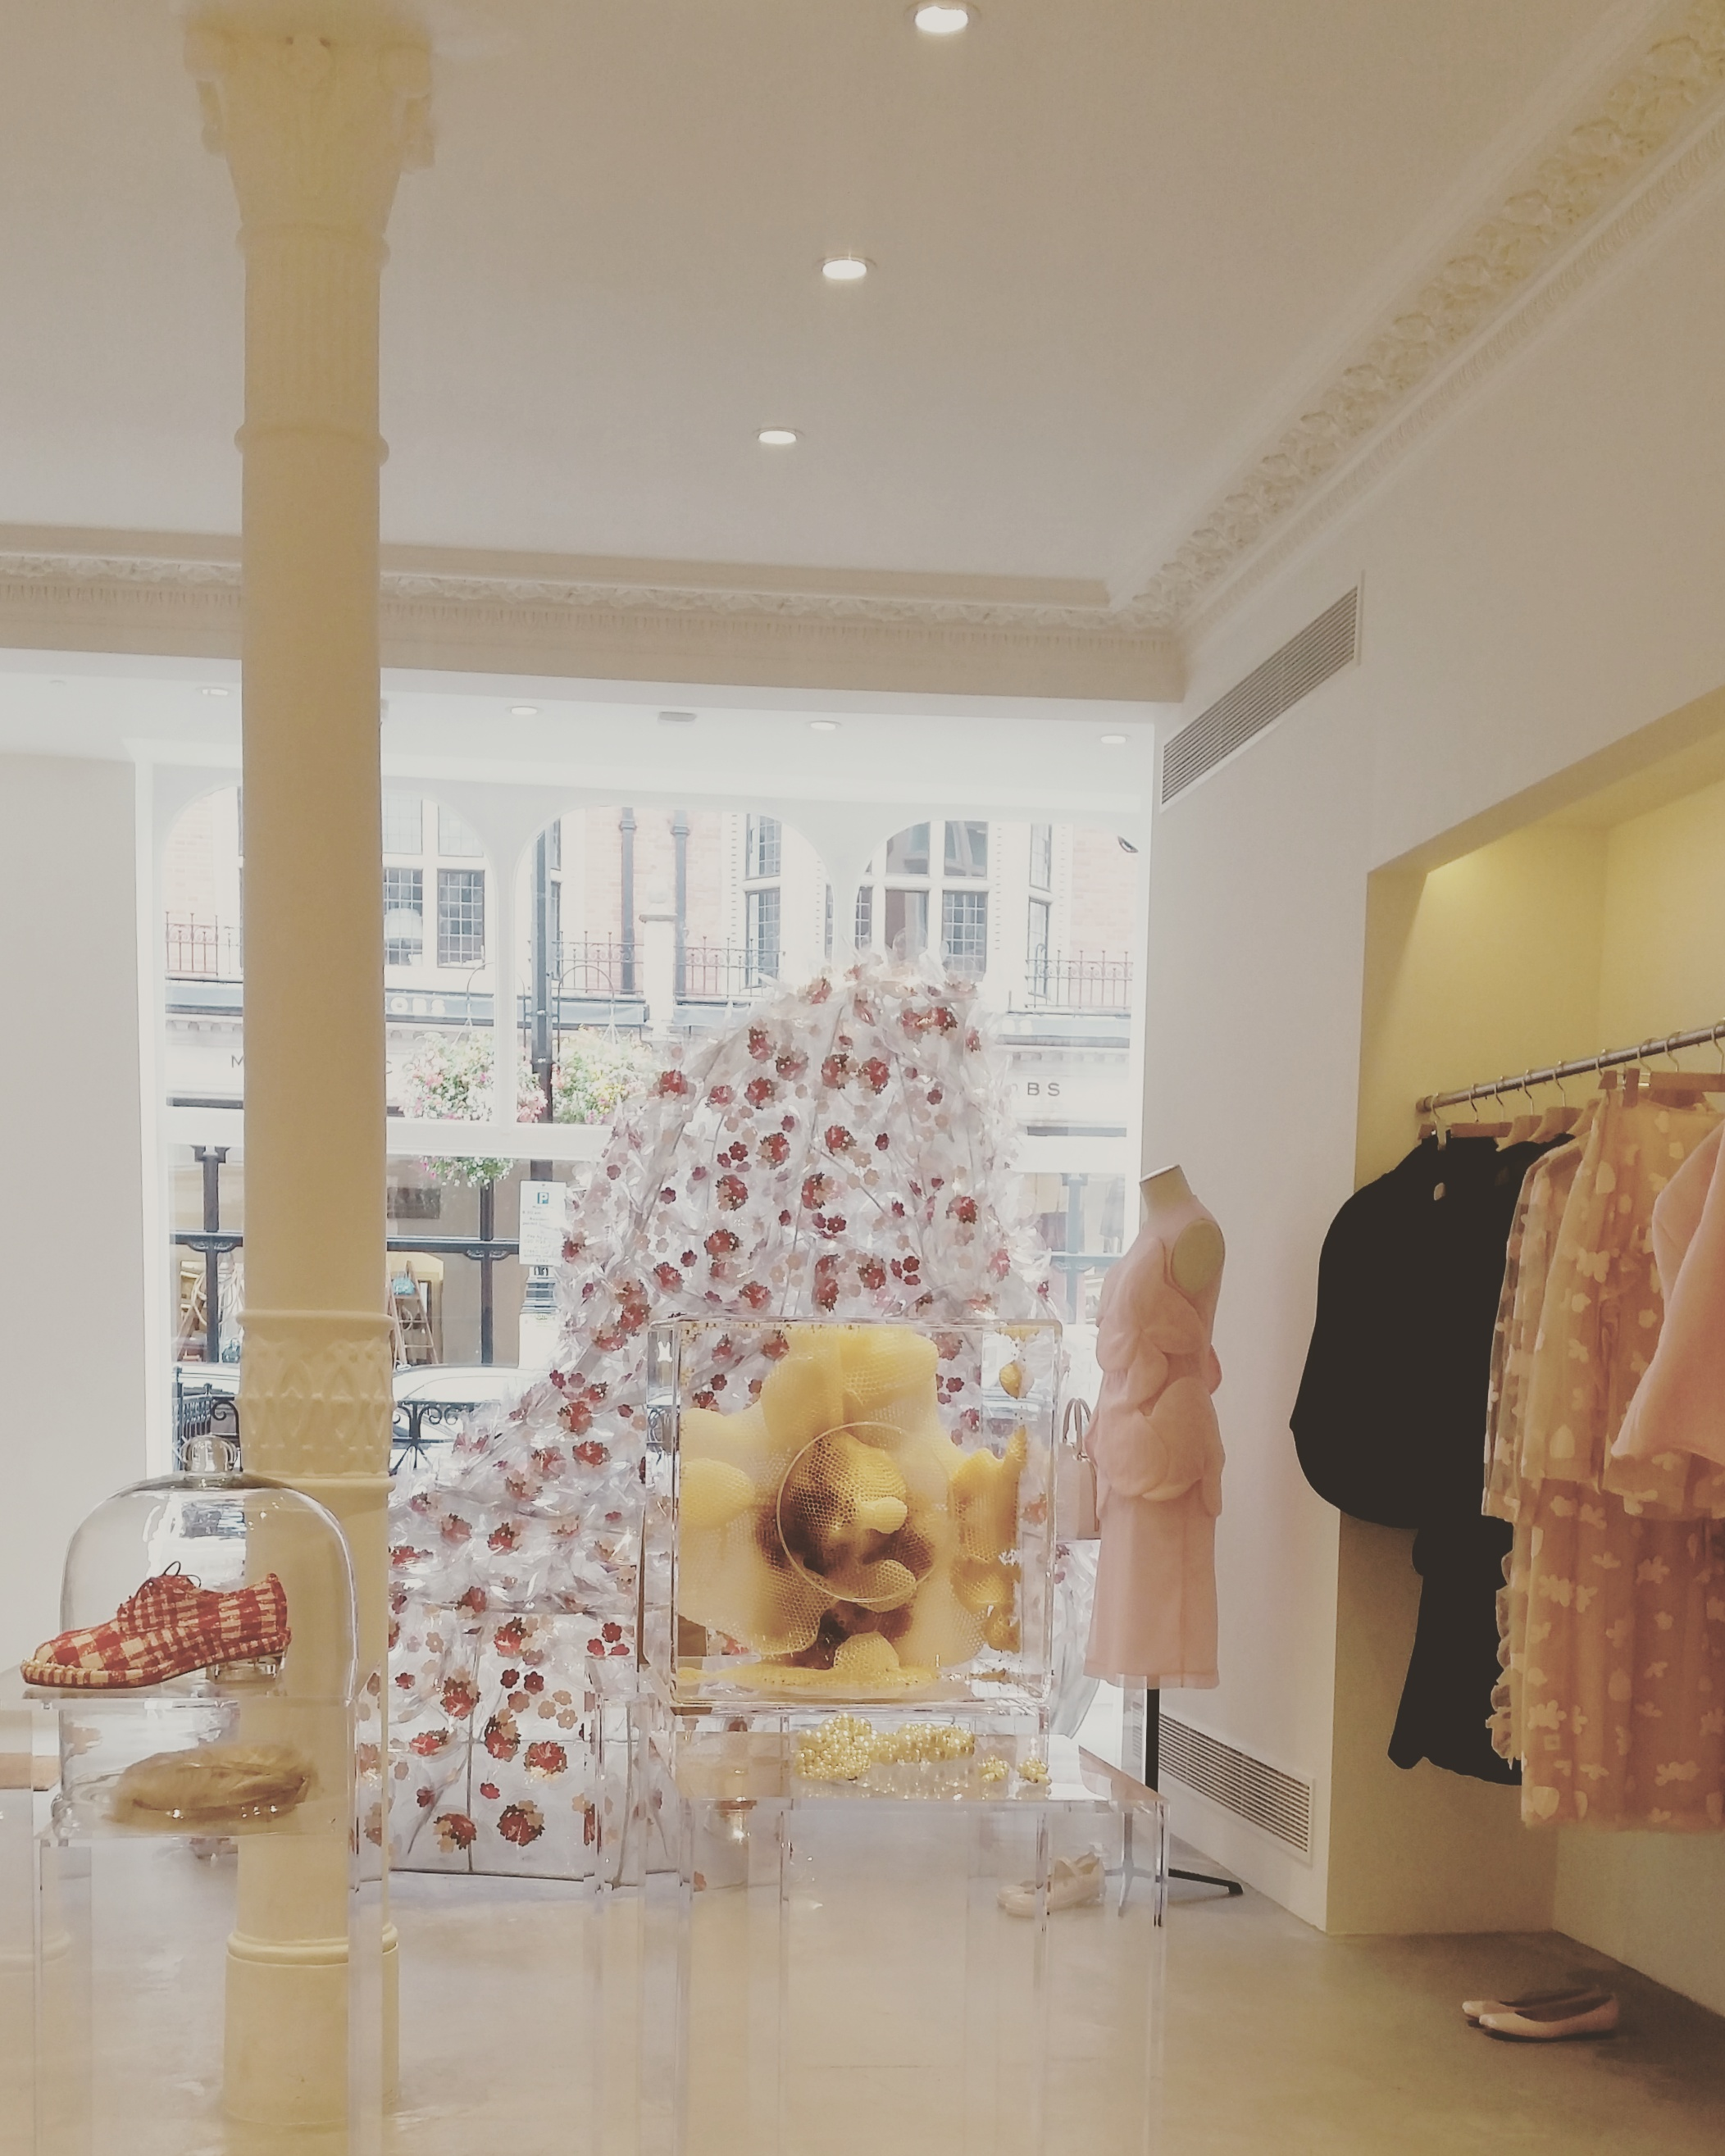 Simone Rocha's first shop: 93 Mount Street, London, W1K 2SY // The window sculpture is a collaboration between Simone Rocha and artist Janina Pedan